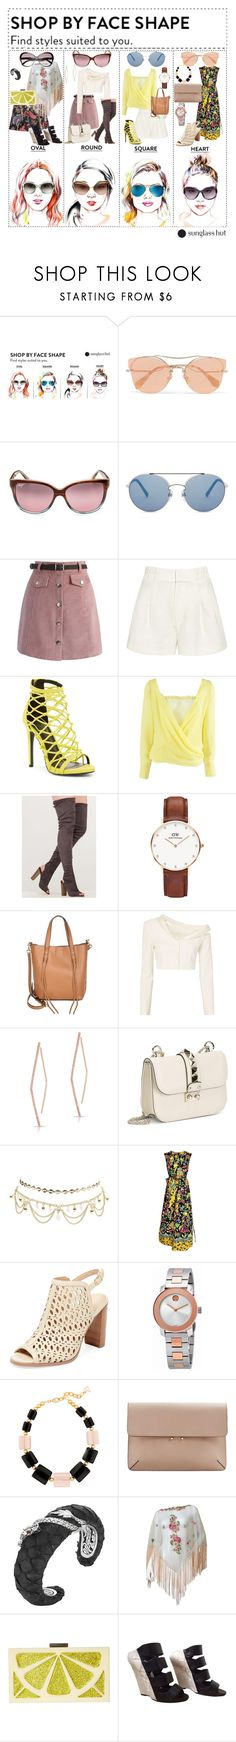 """""""Style Suited to You- Inspired by Sunglass Hut"""" by fantasy-luv ❤ liked on Polyvore featuring Miu Miu, Maui Jim, Valentino, Chicwish, Apiece Apart, Wild Diva, Versace, Daniel Wellington, Rebecca Minkoff and Jonathan Simkhai"""